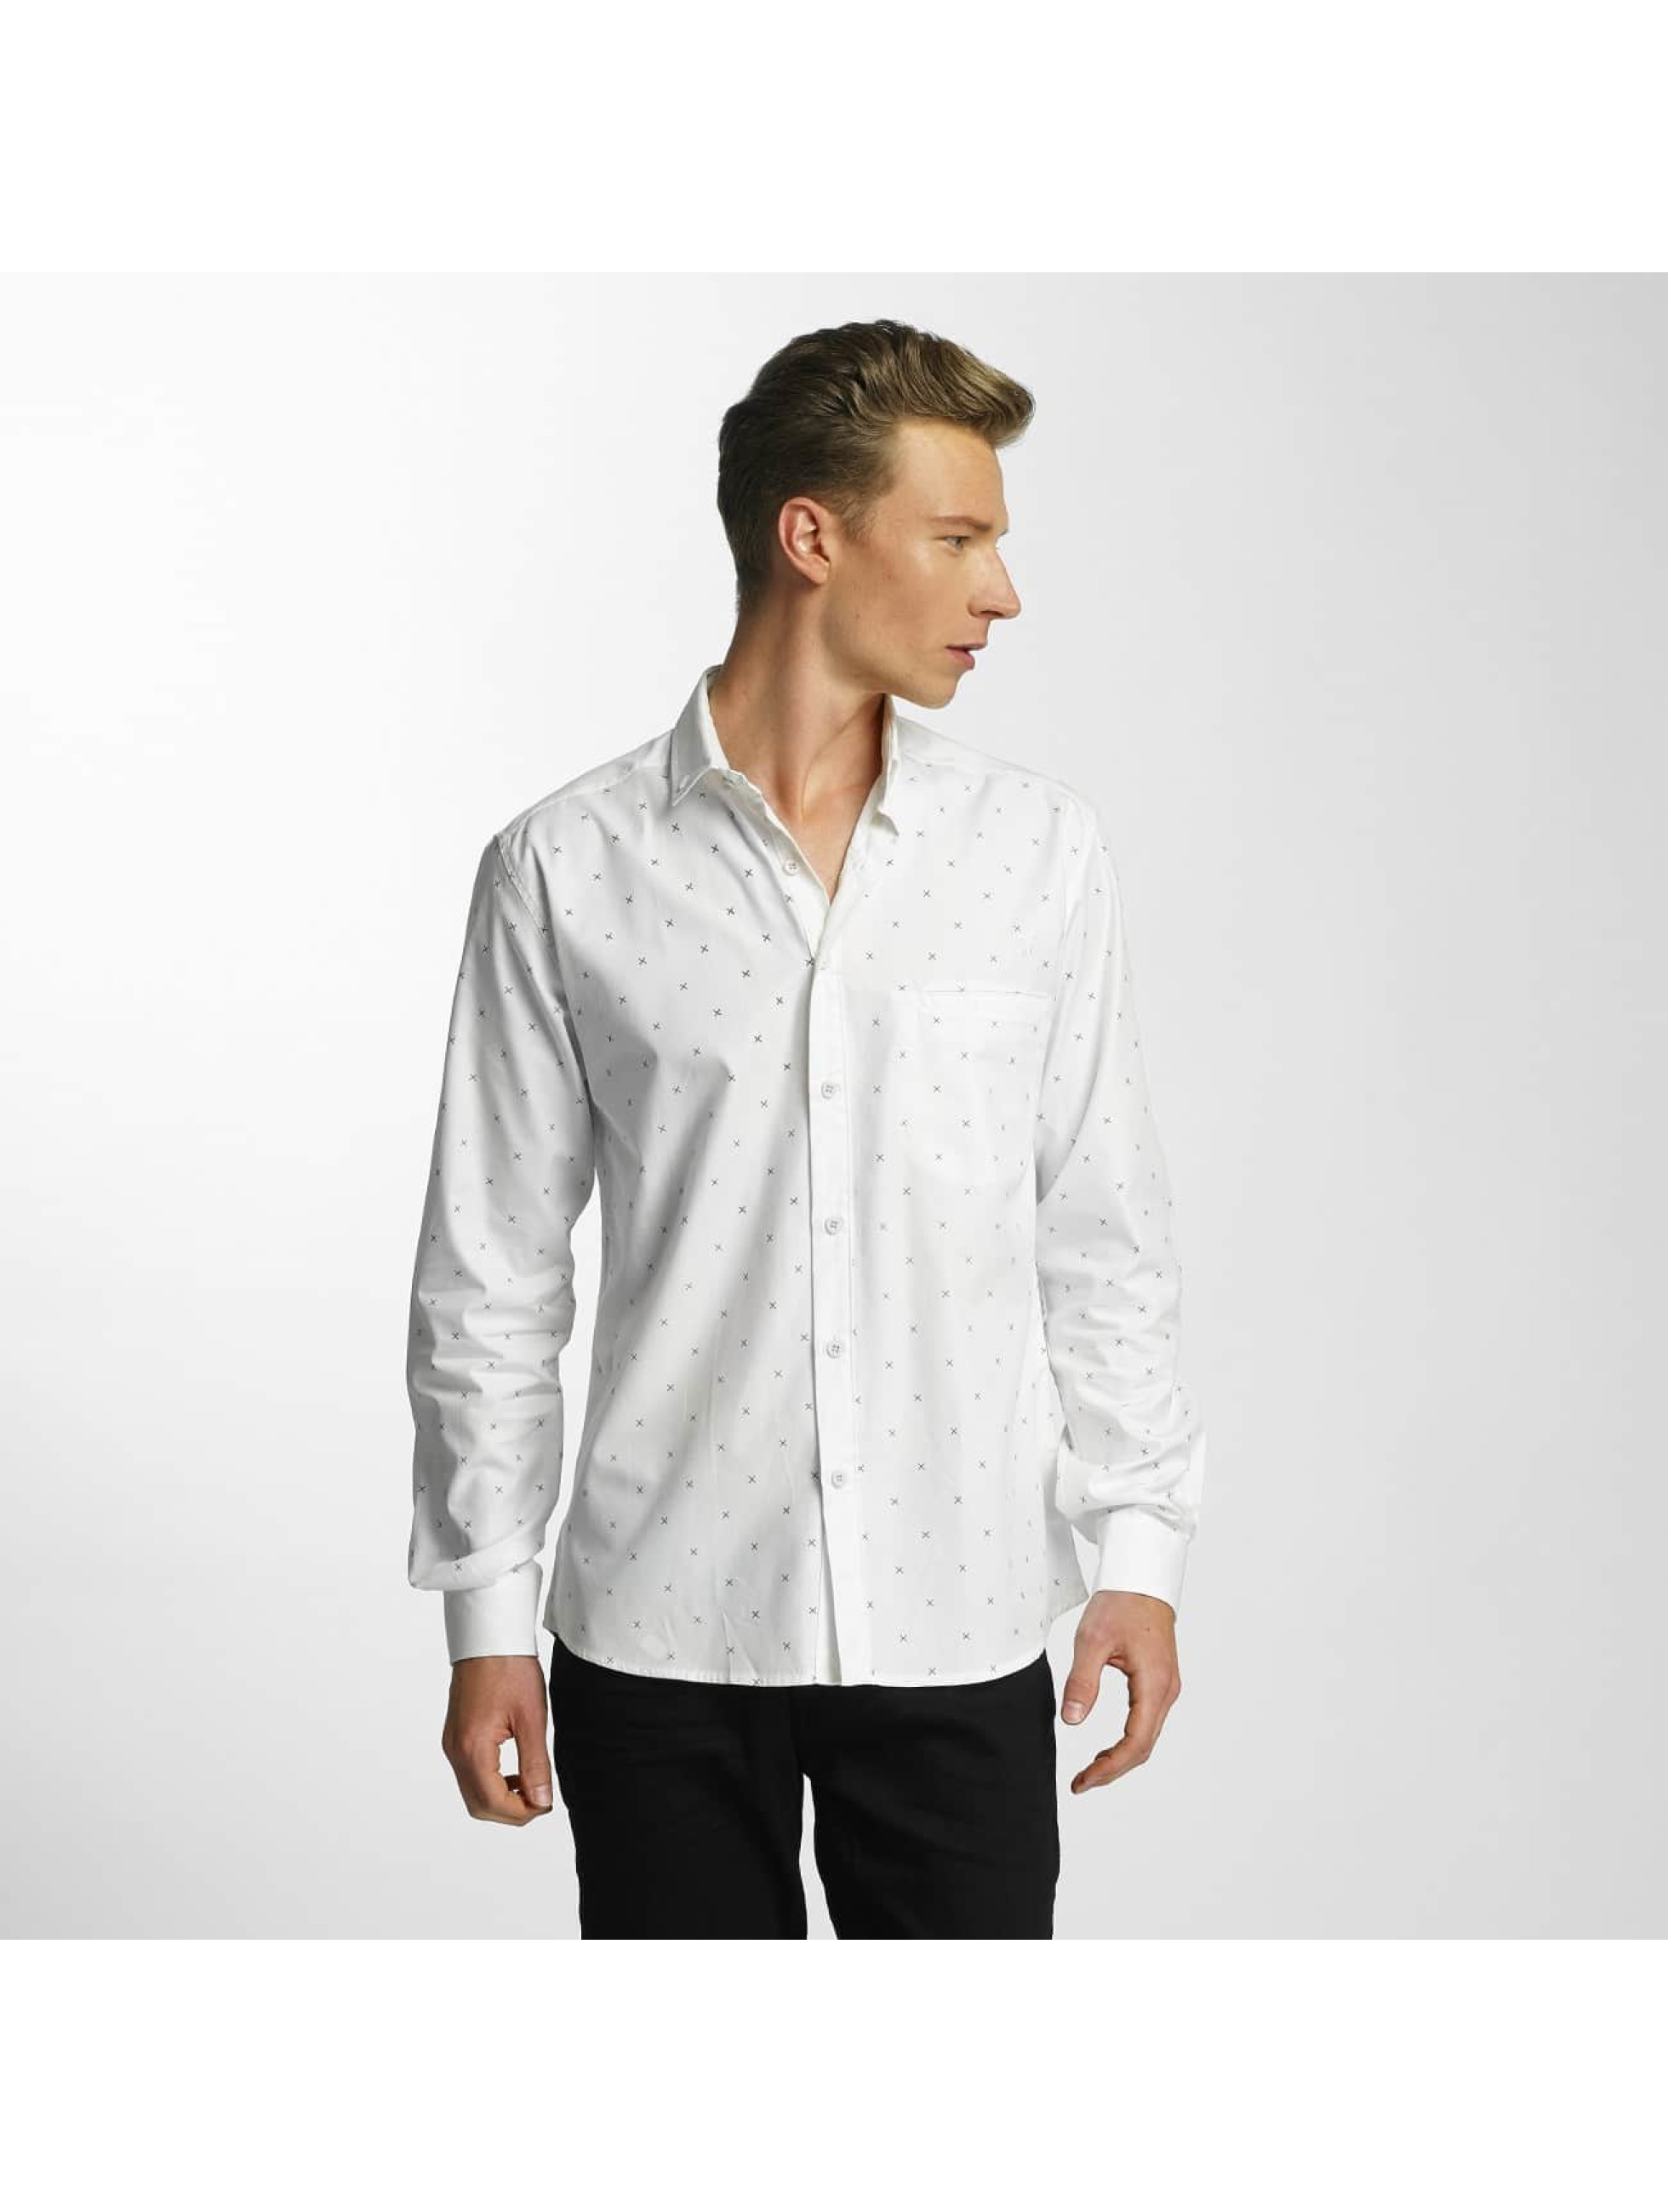 Cazzy Clang / Shirt Cross in white XL